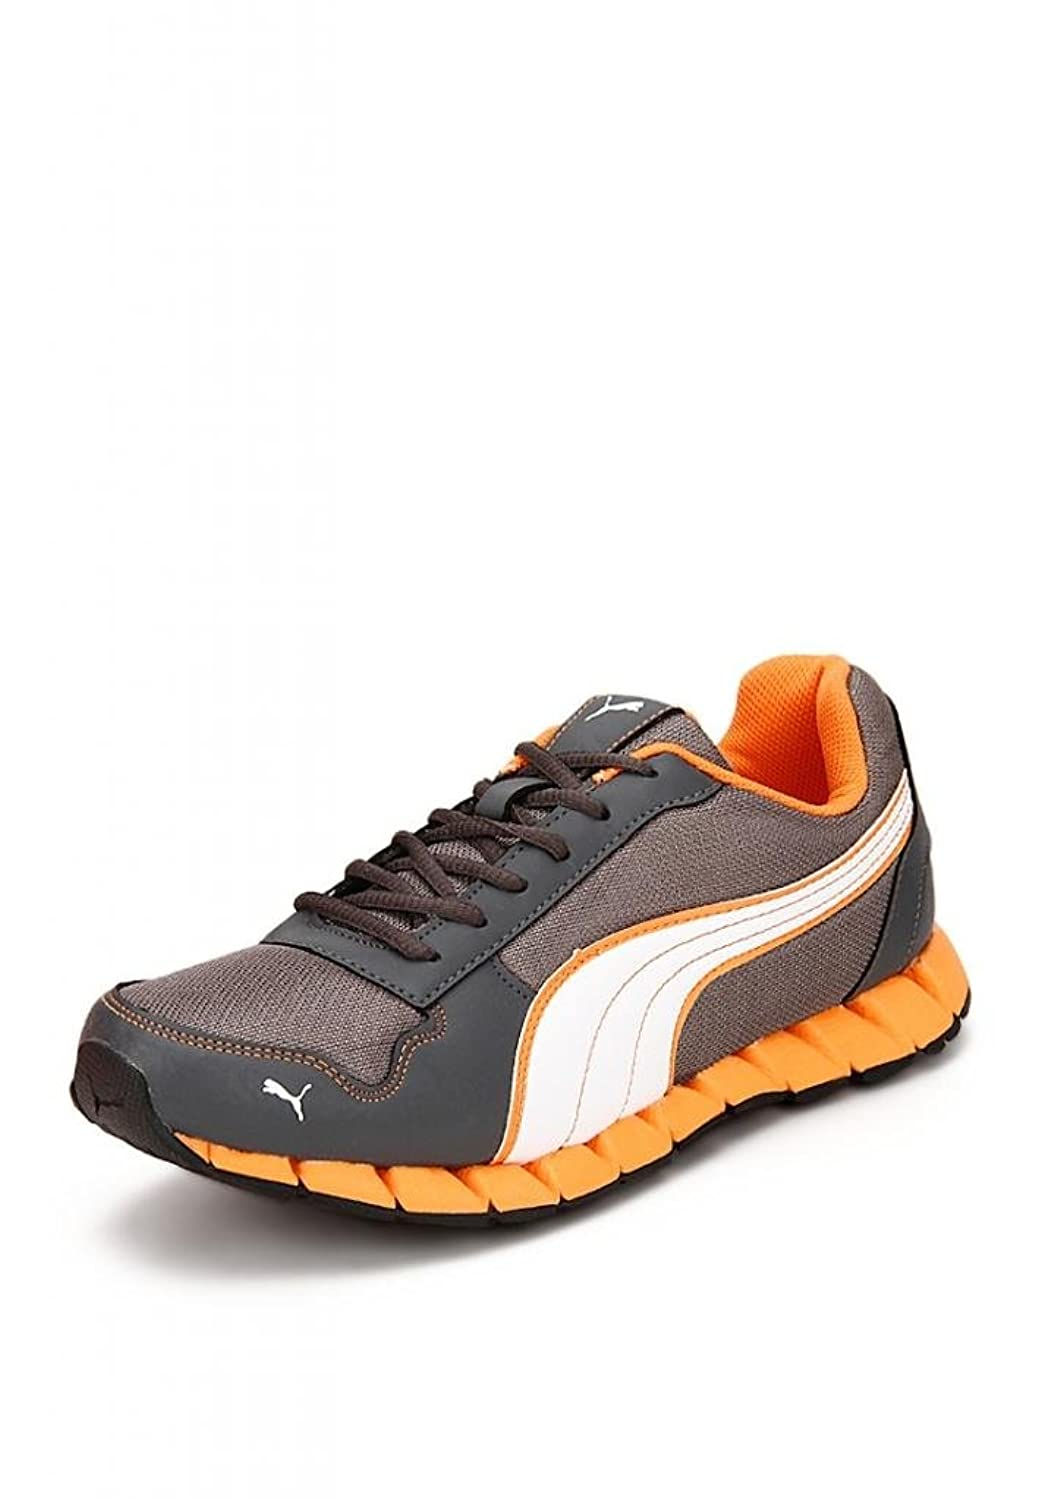 Puma Men s Kevler 2 DP Mesh Running Shoes  Buy Online at Low Prices ... 5188130b2